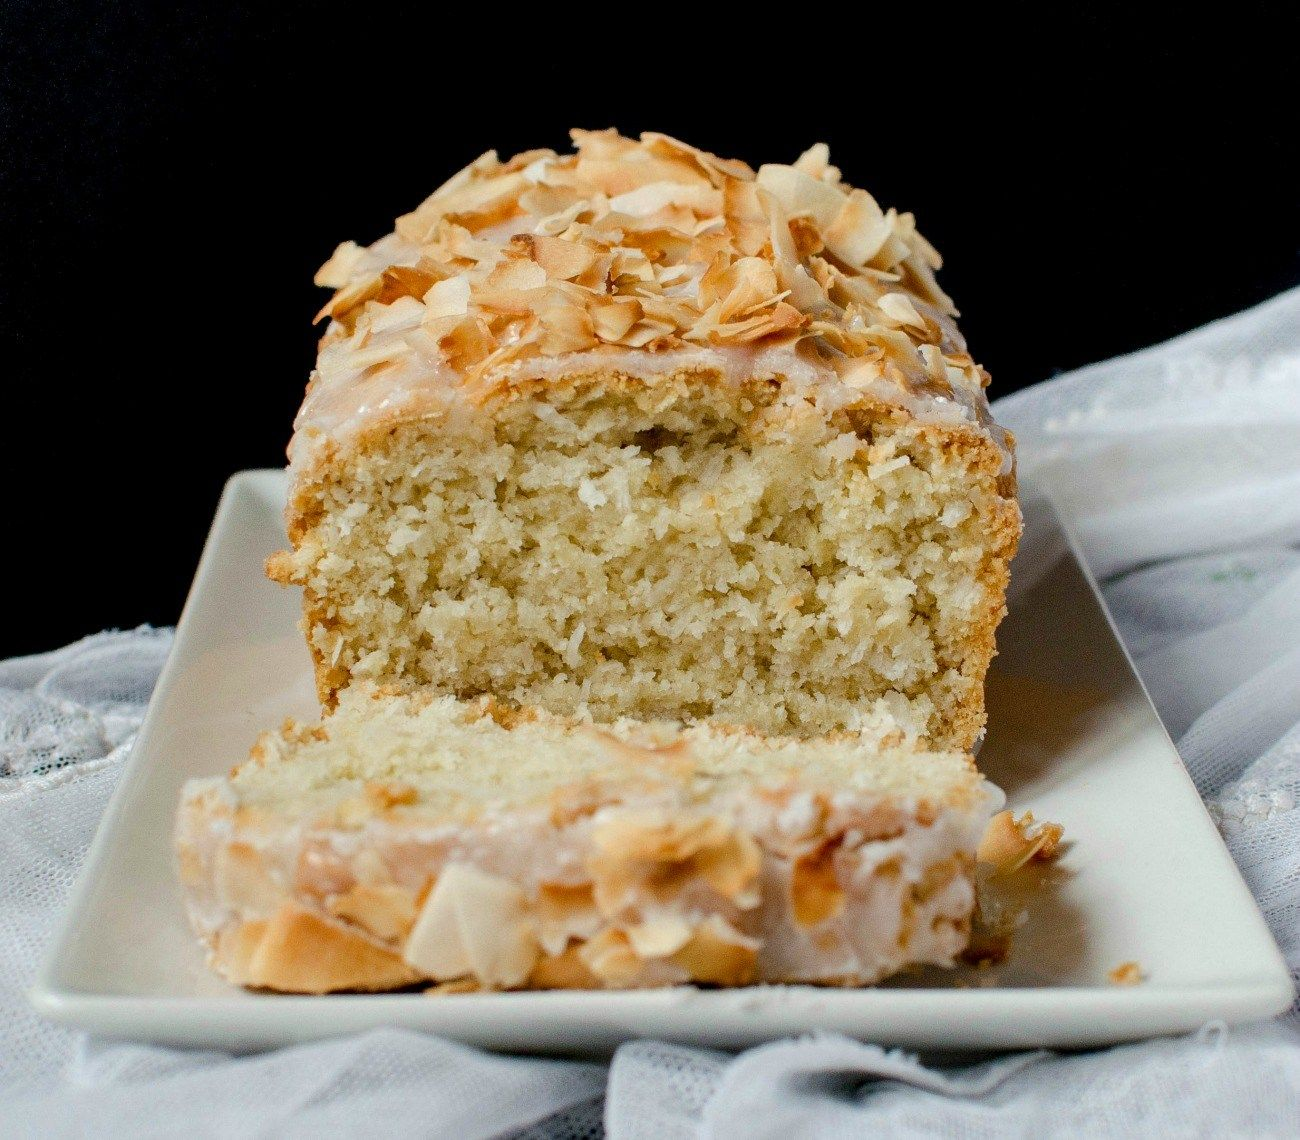 Vegan Coconut Loaf Cake Recipe With Images Vegan Coconut Cake Coconut Loaf Cake Vegan Bakery